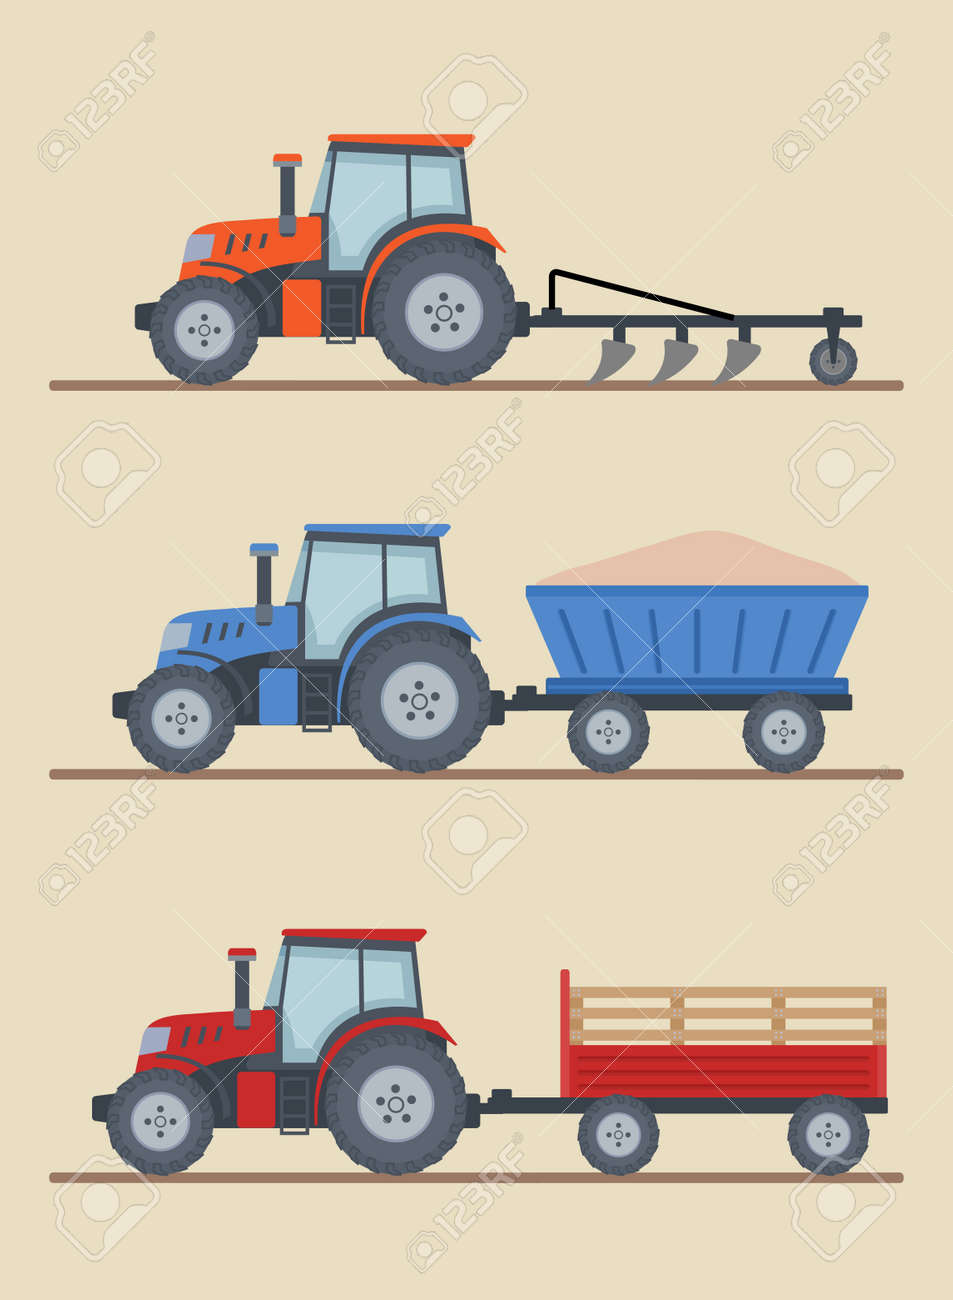 Three farm tractors isolated on beige background. Heavy agricultural machinery for field work. Flat style, vector illustration. - 155760527